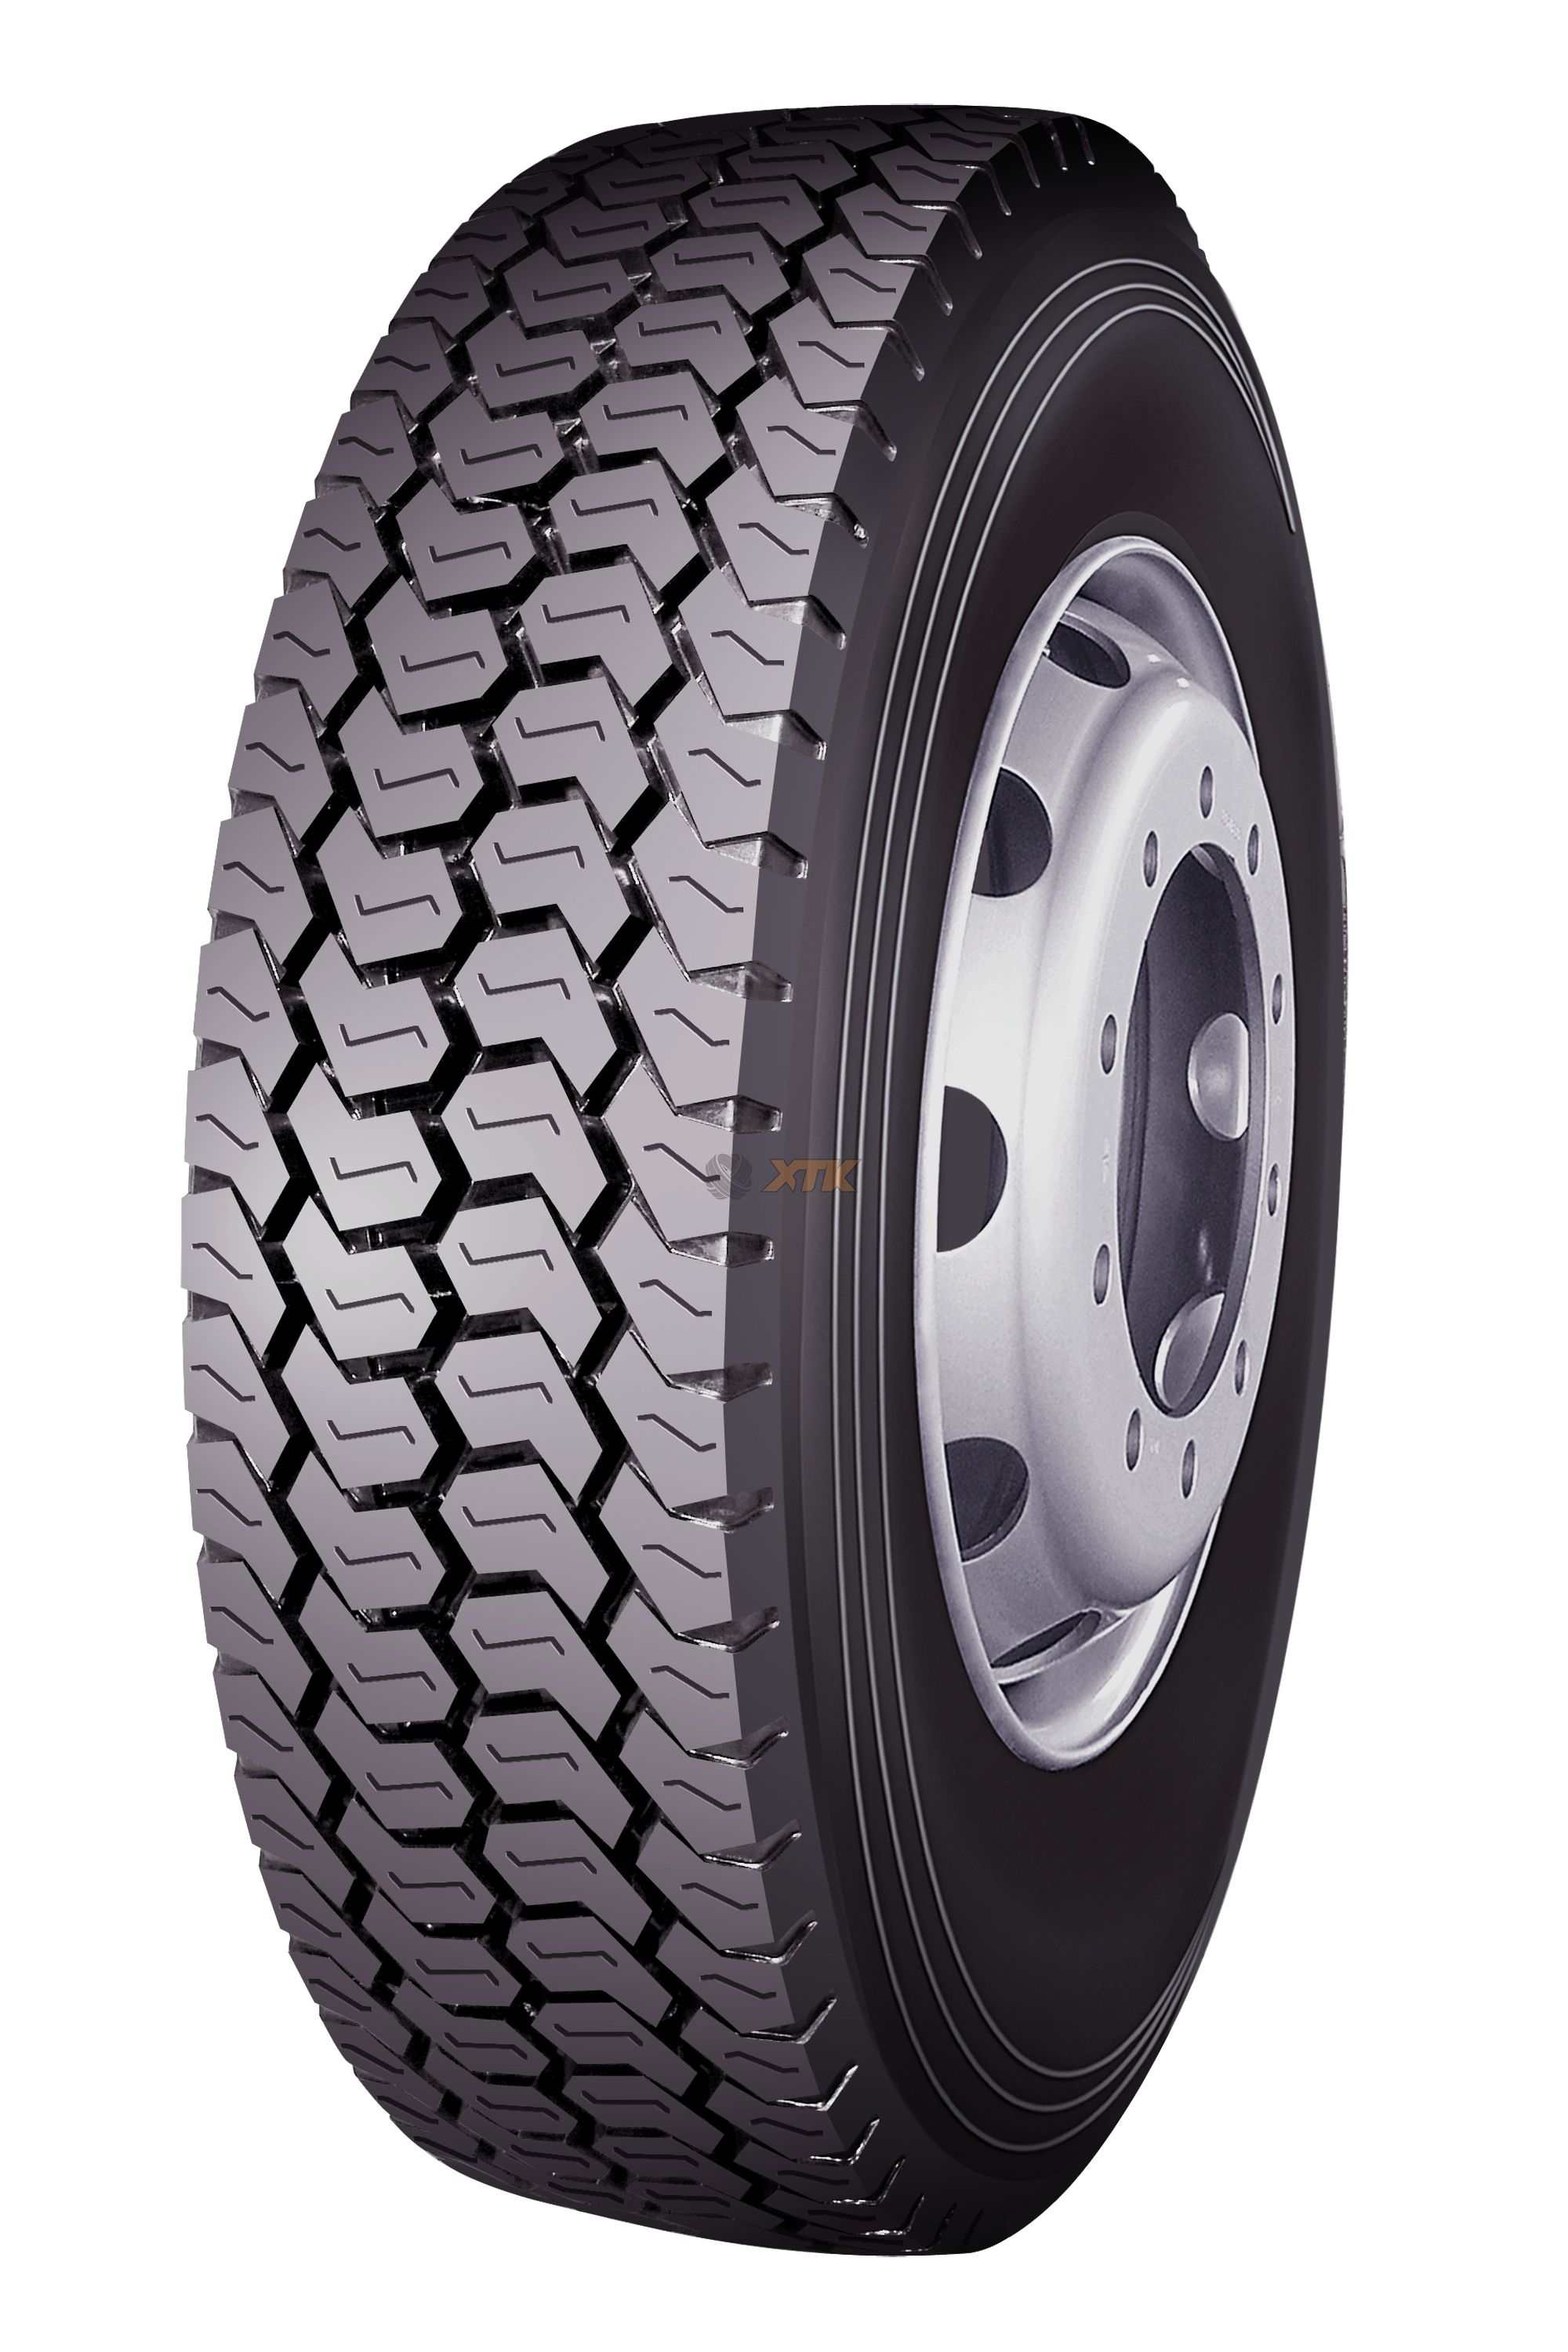 Автошина 265/70R19.5 16PR 143/141J Long March LM508